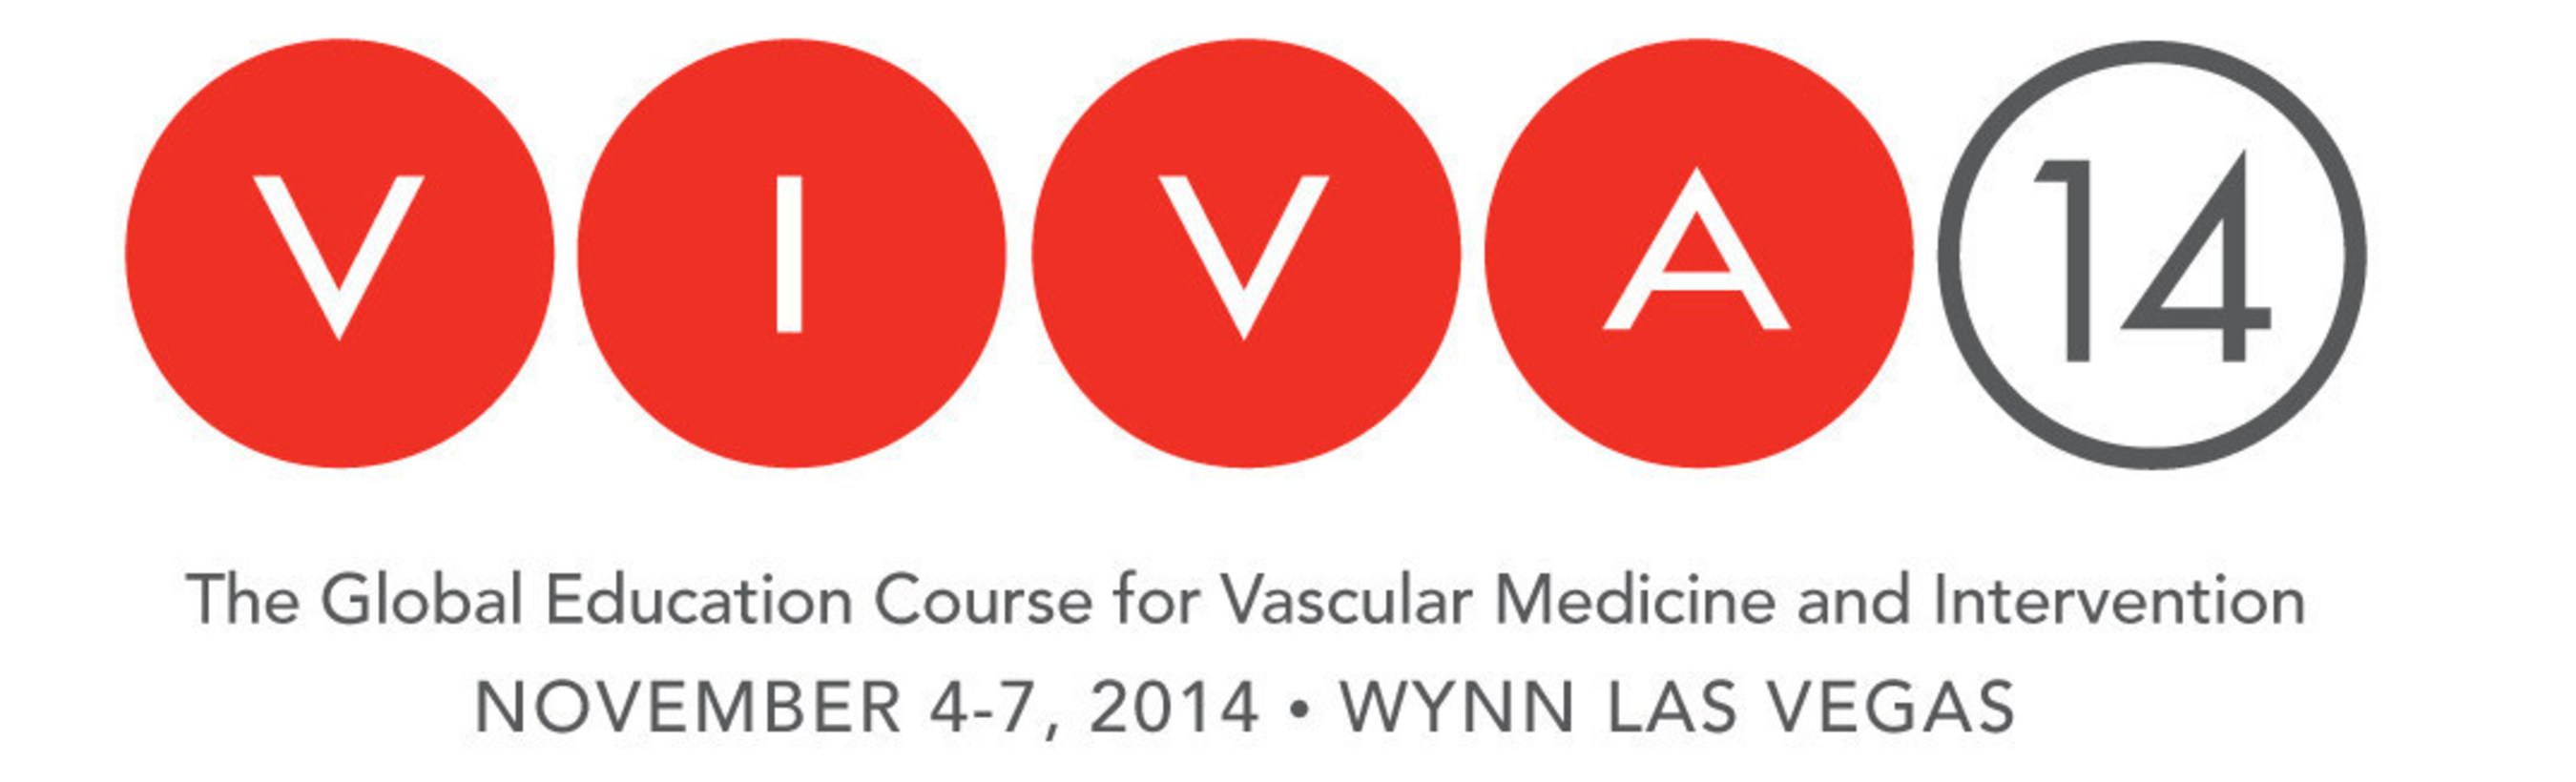 VIVA Physicians, a not-for-profit organization dedicated to advancing the field of vascular medicine and ...